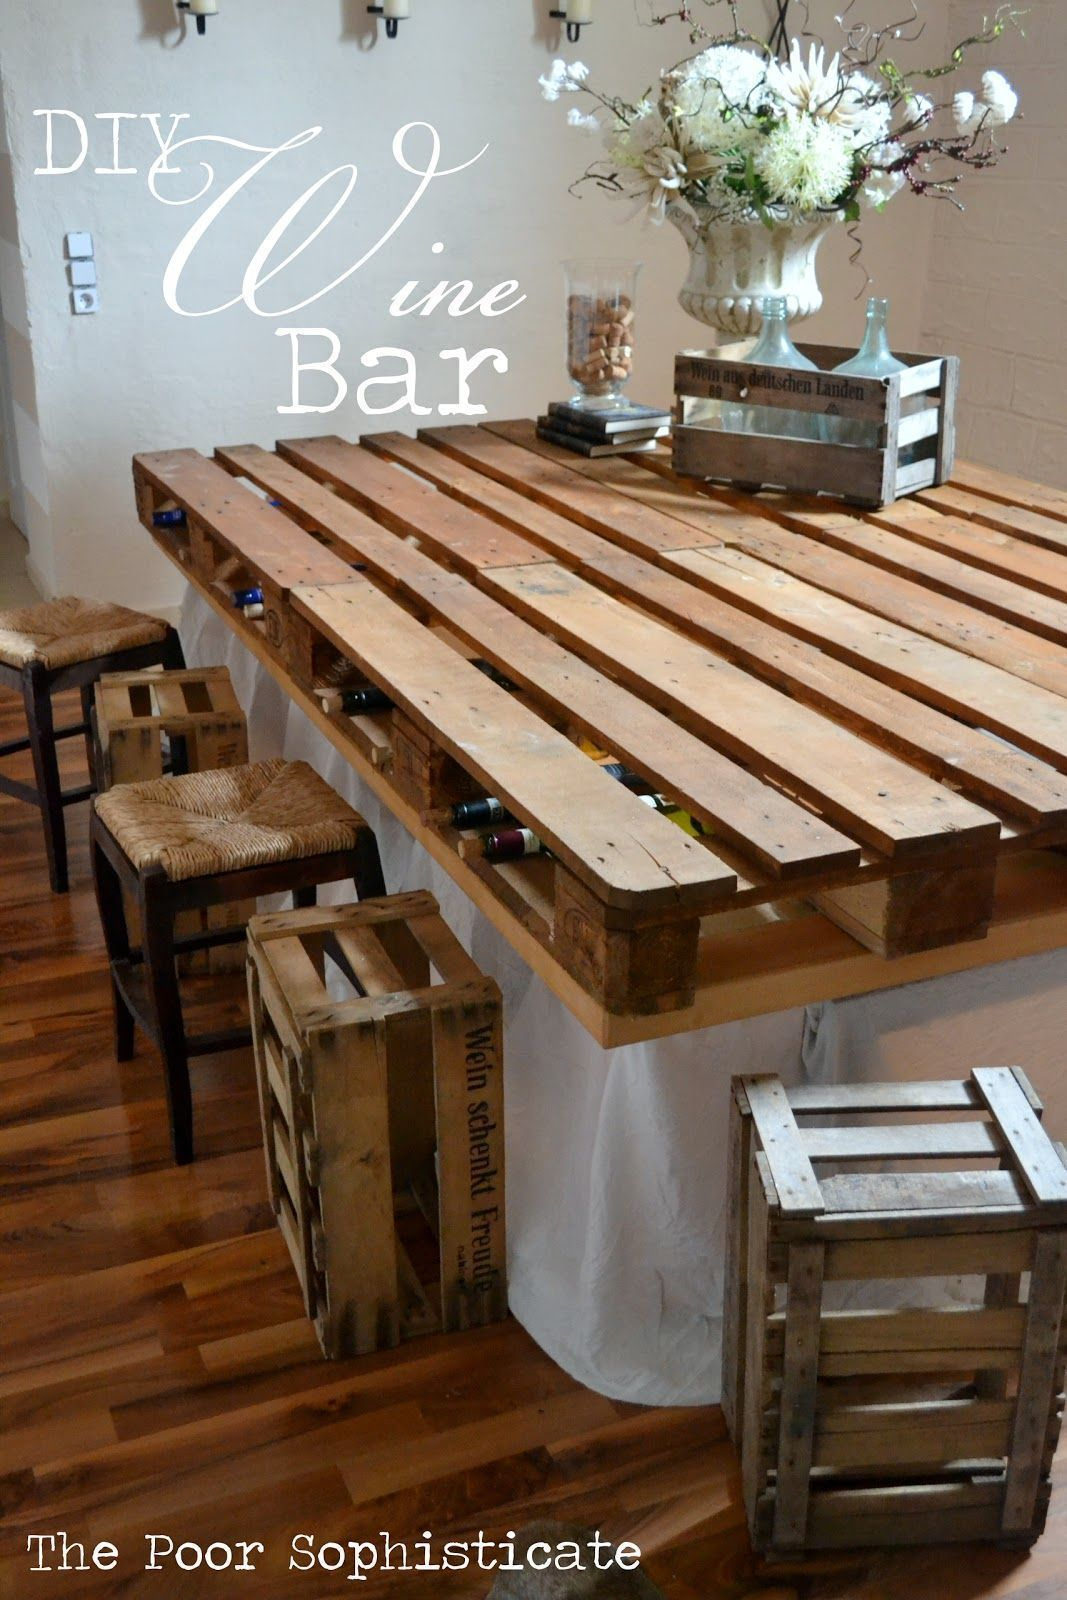 Gorgeous low cost pallet bar diy ideas for your home plans diy